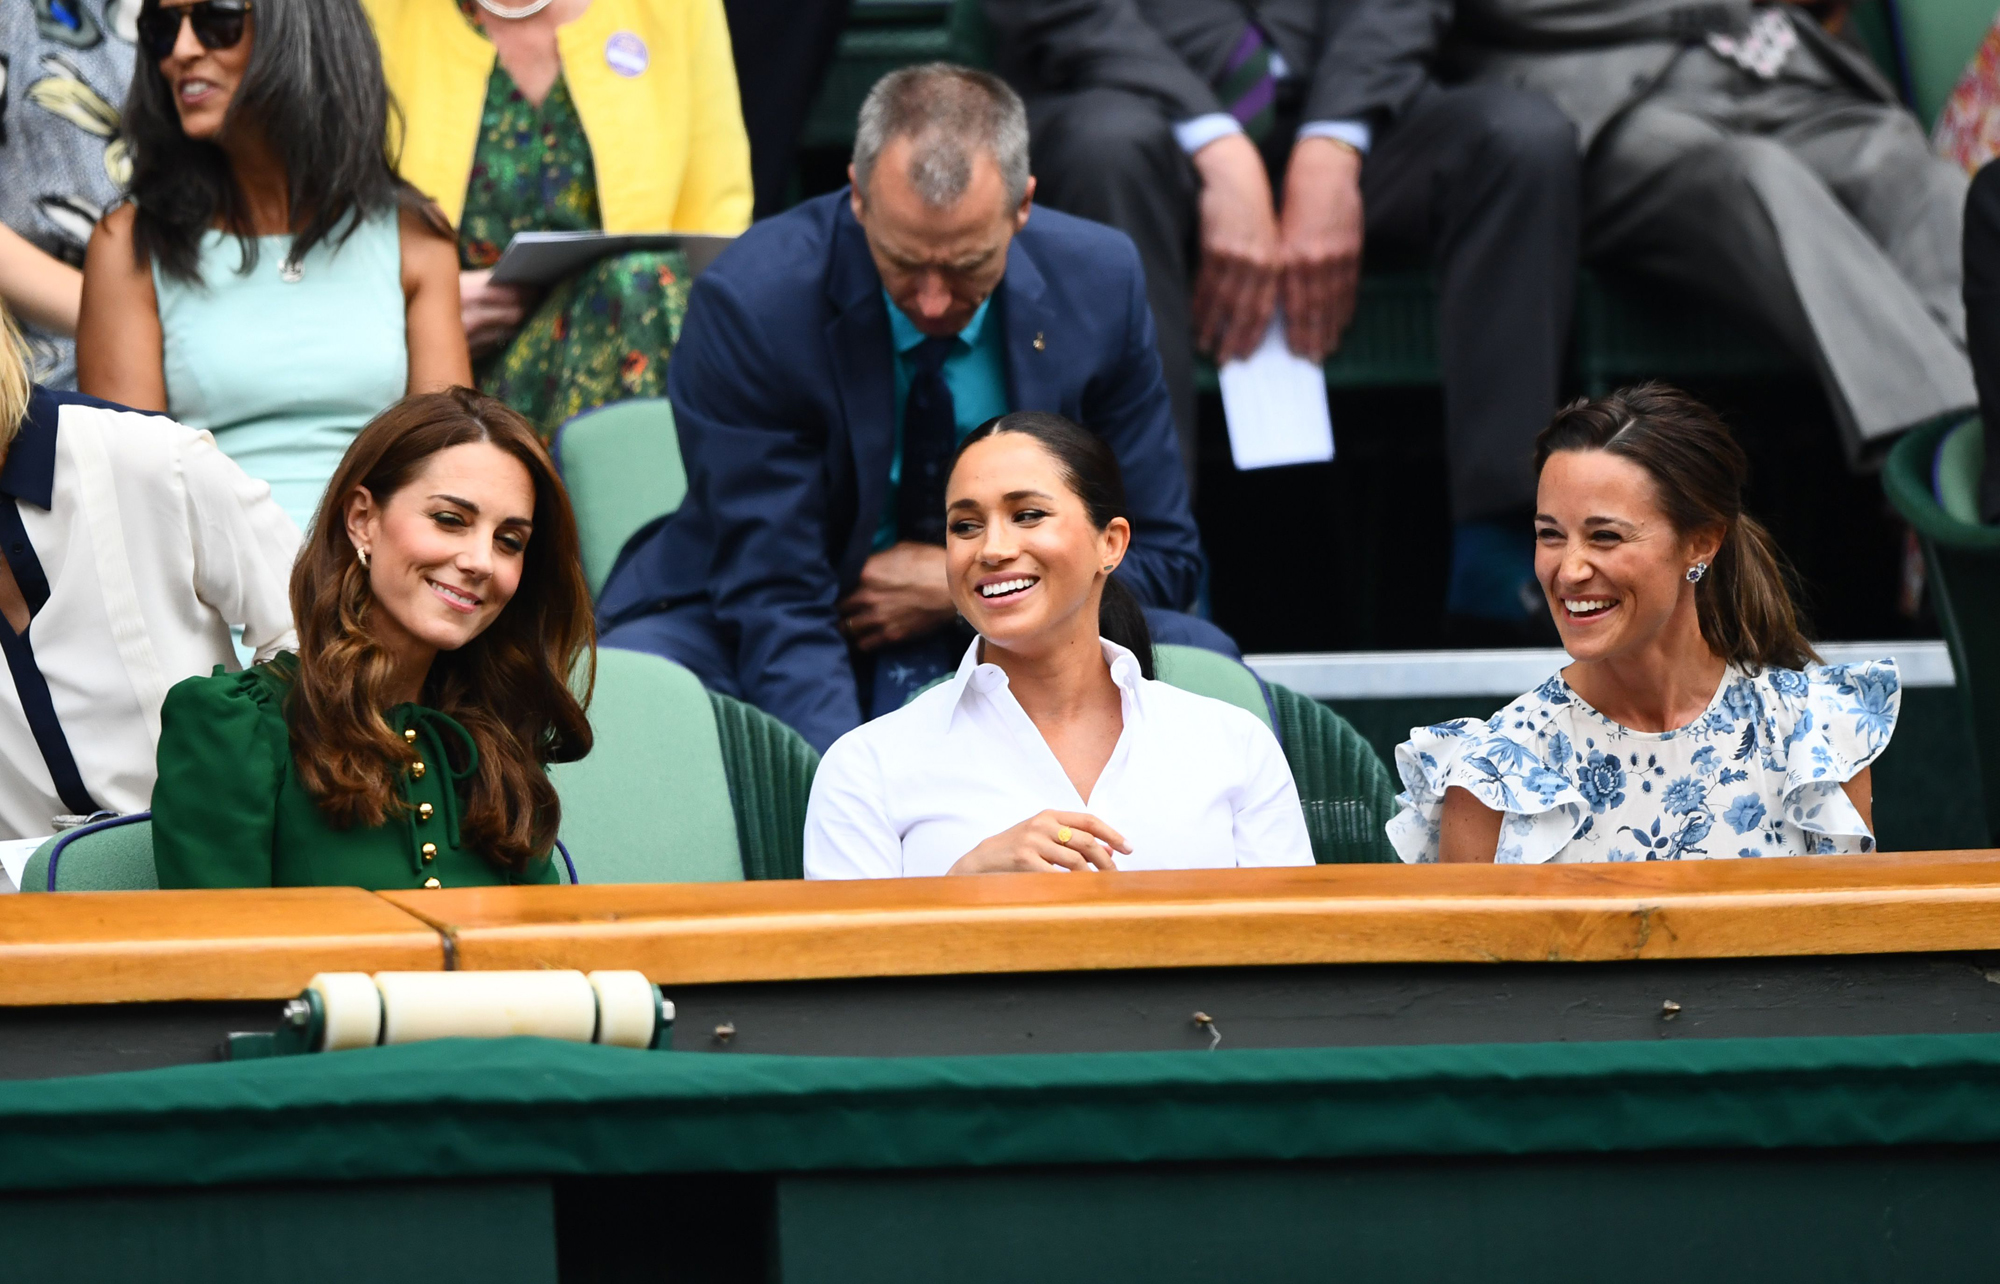 Catherine, Duchess of Cambridge, Meghan, Duchess of Sussex and Pippa Middleton